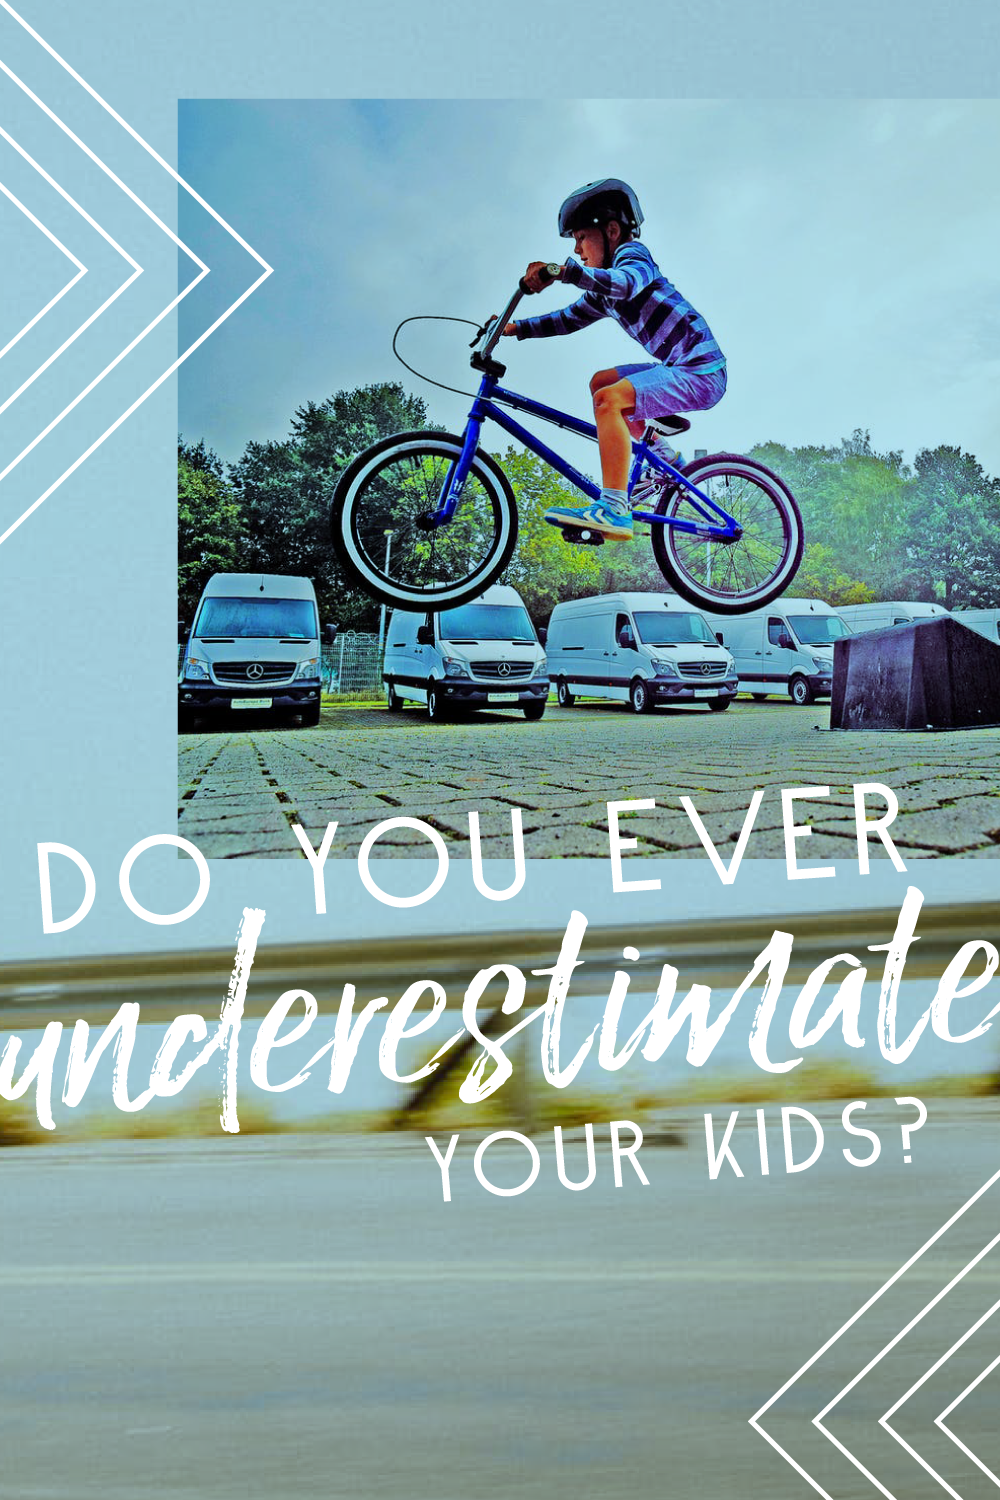 Underestimating your kids - Love Cubs